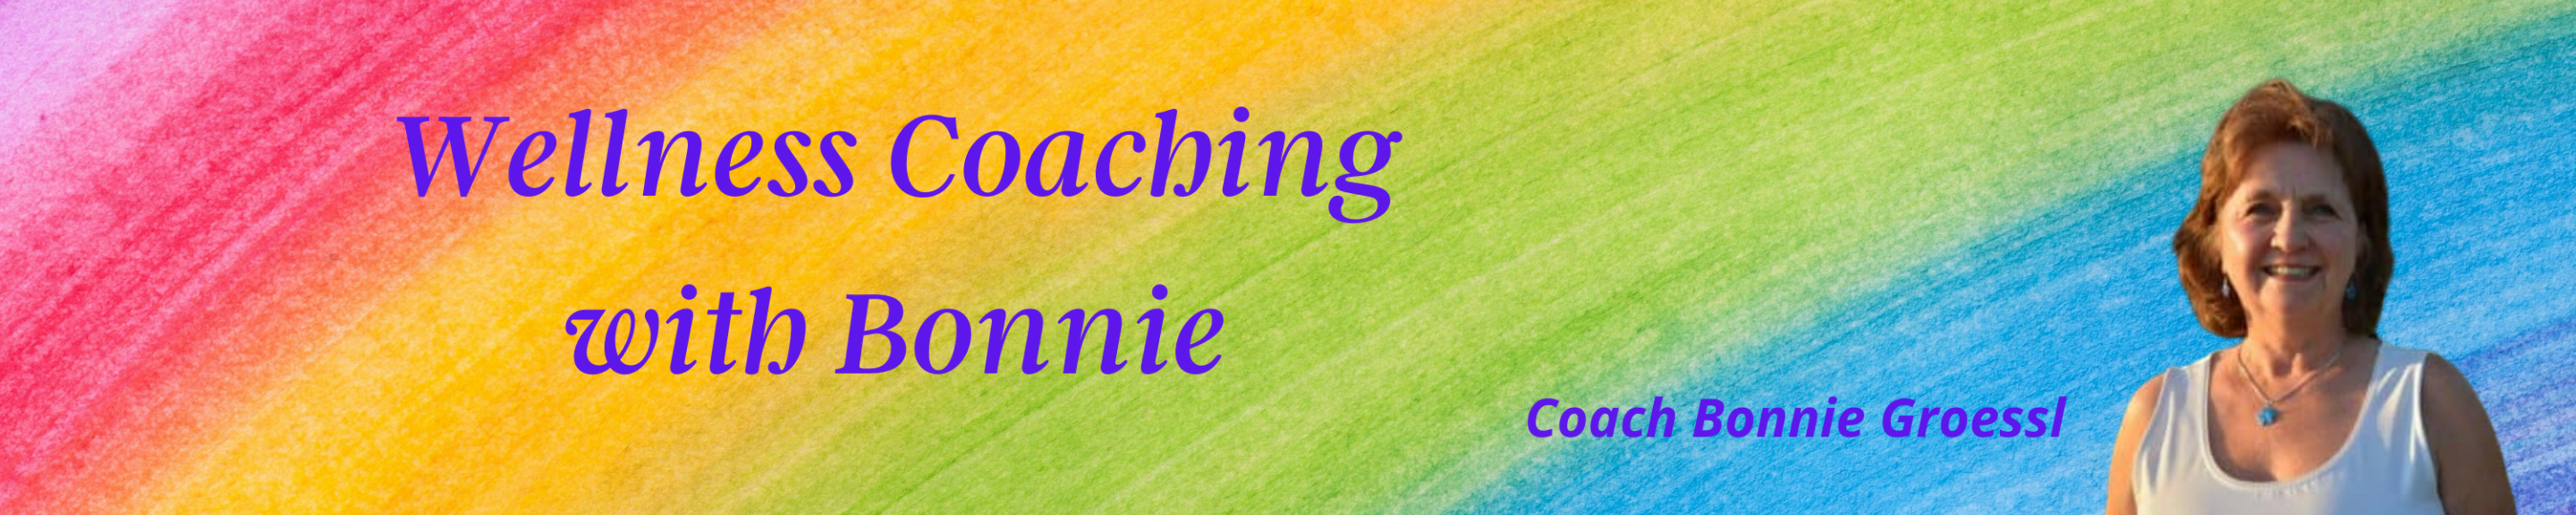 Wellness Coaching with Bonnie Groessl